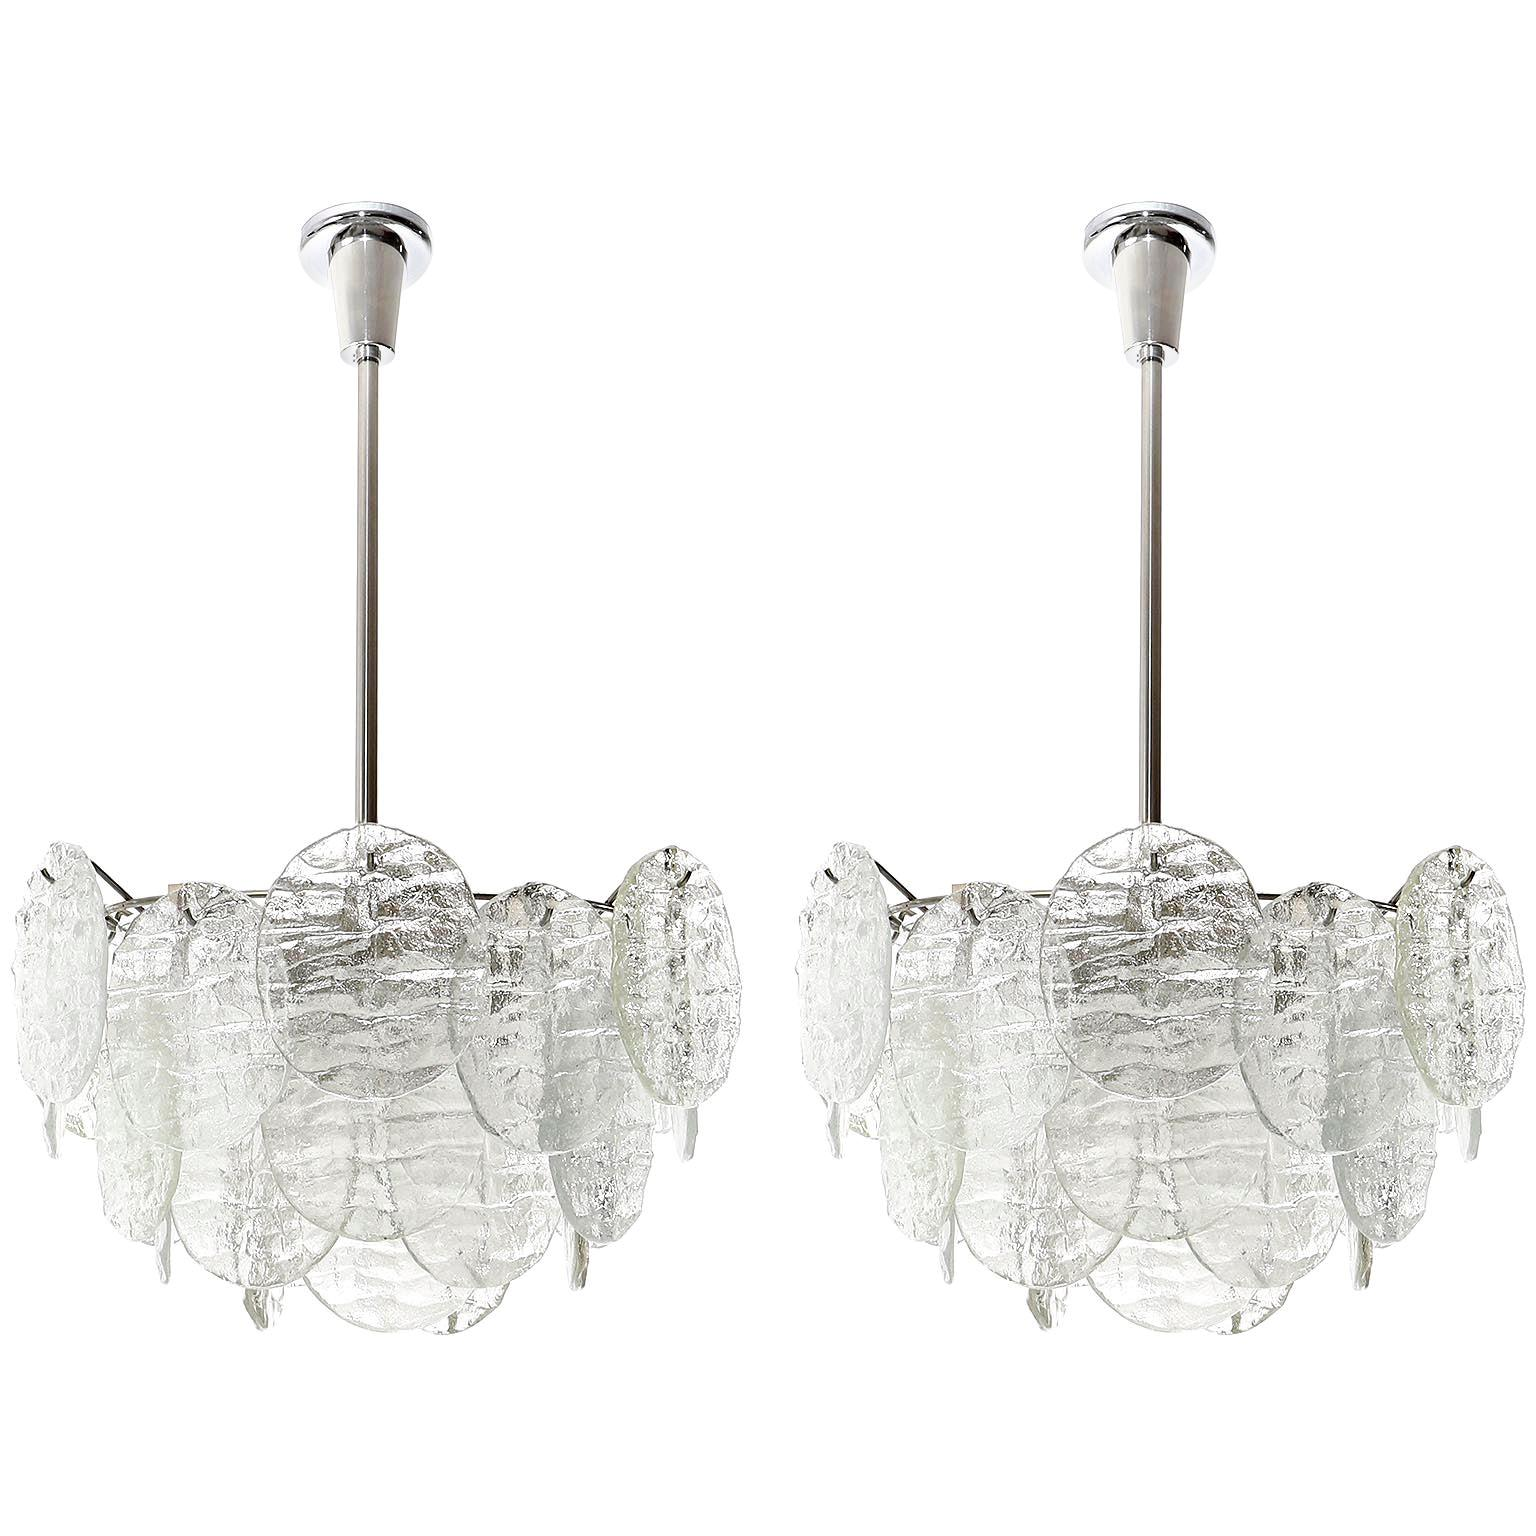 Two Kalmar 'Blatt' Pendant Lights Chandeliers, Textured Glass Nickel, 1970s